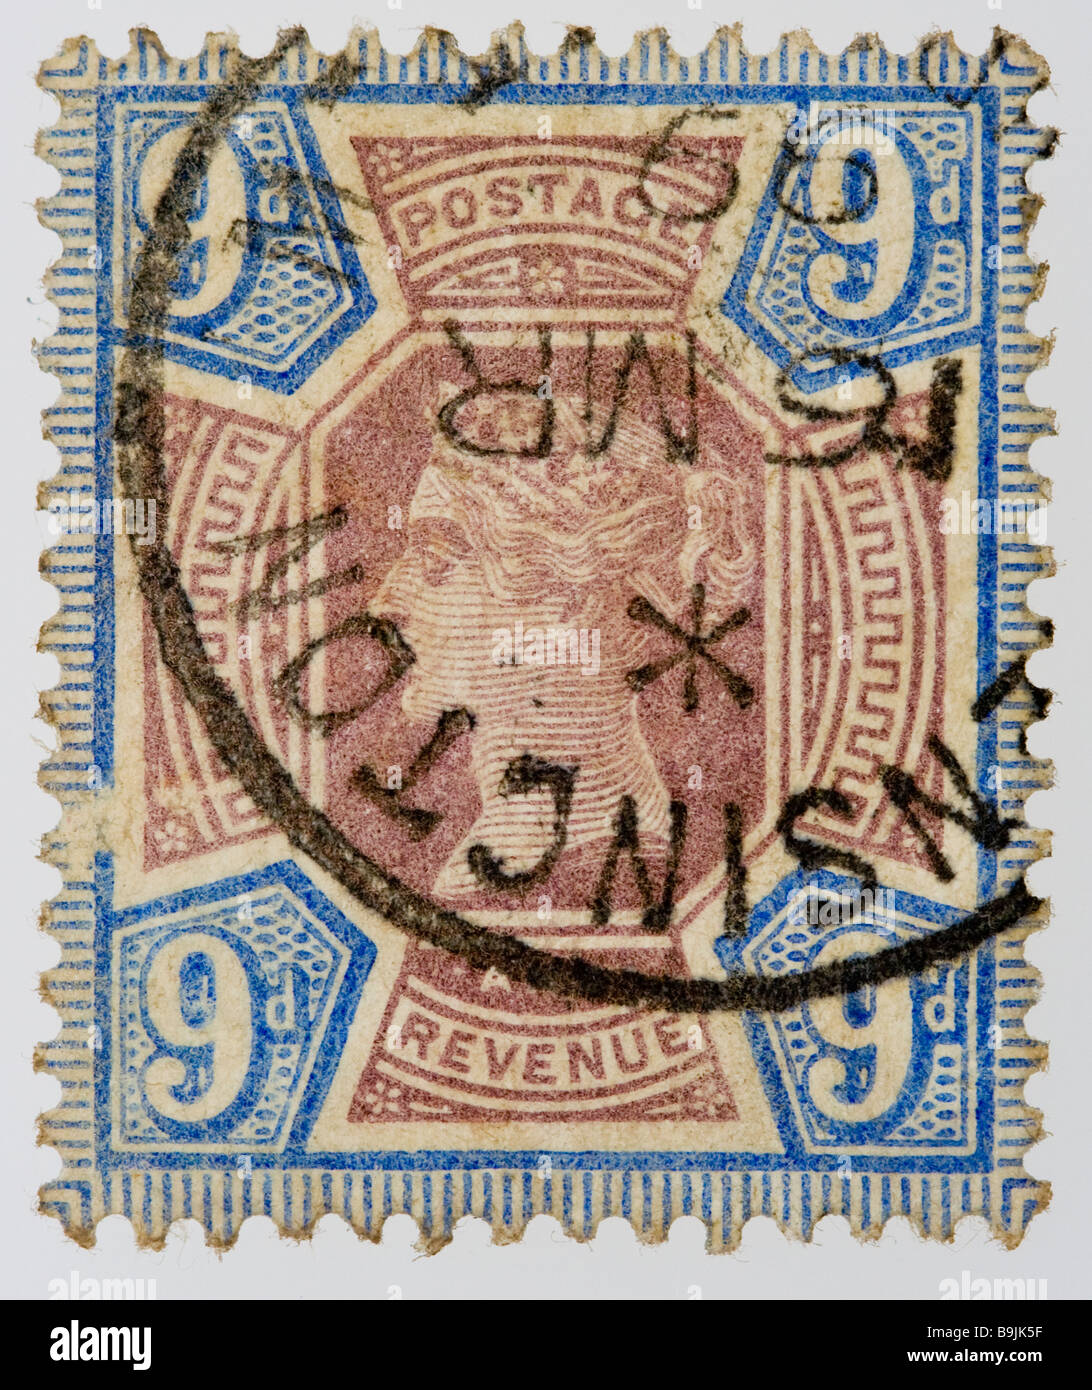 British Victorian 9d postage stamp 1887-1900 SG209, Jubilee issue, blue and brown, franked, used - Stock Image